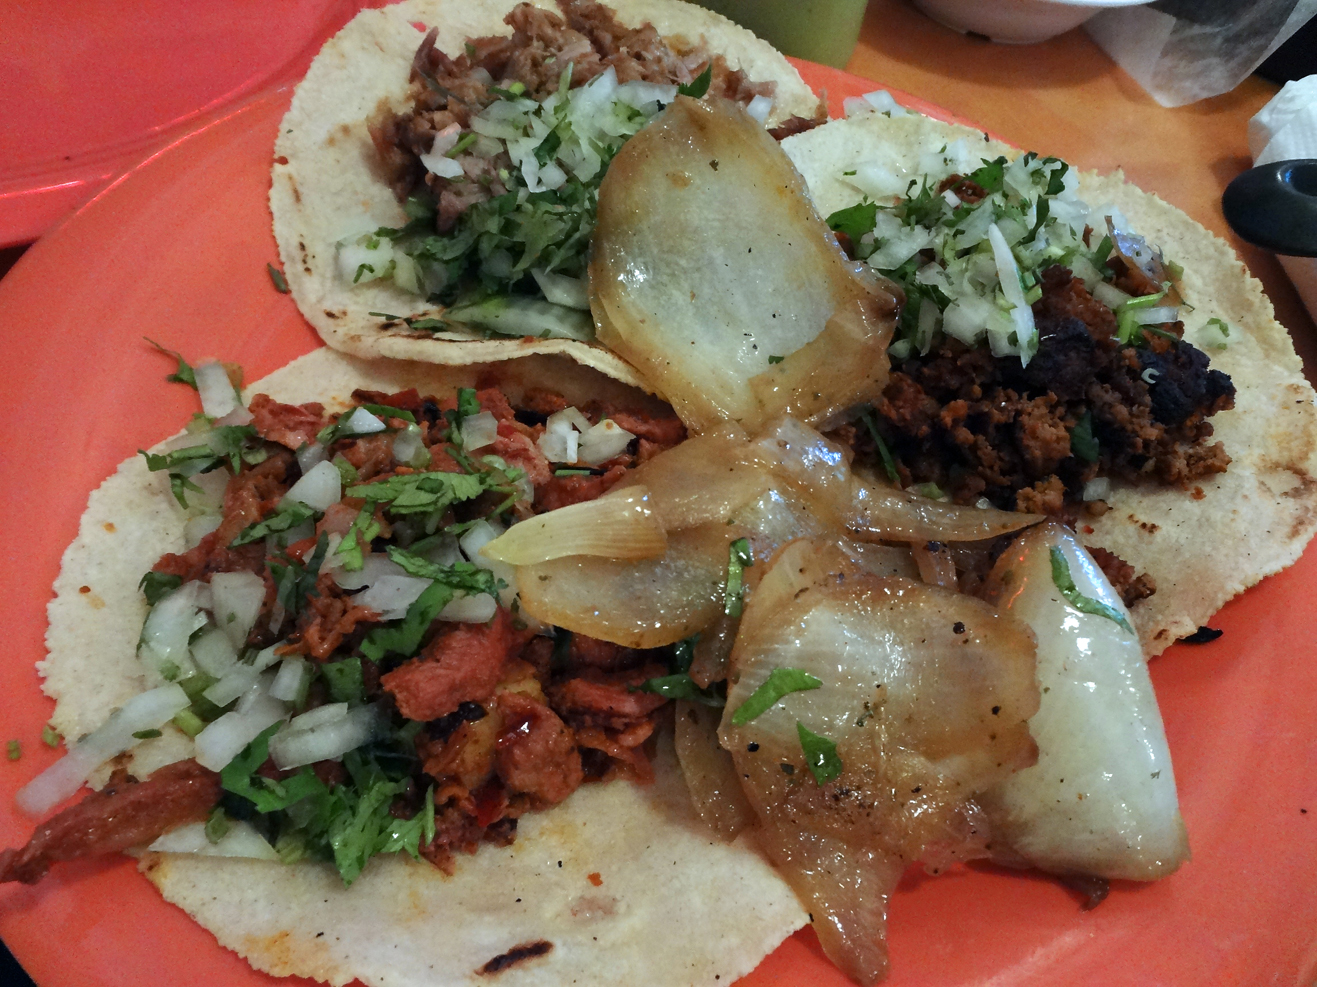 Tacos: chorizo, carnitas, and carne asada